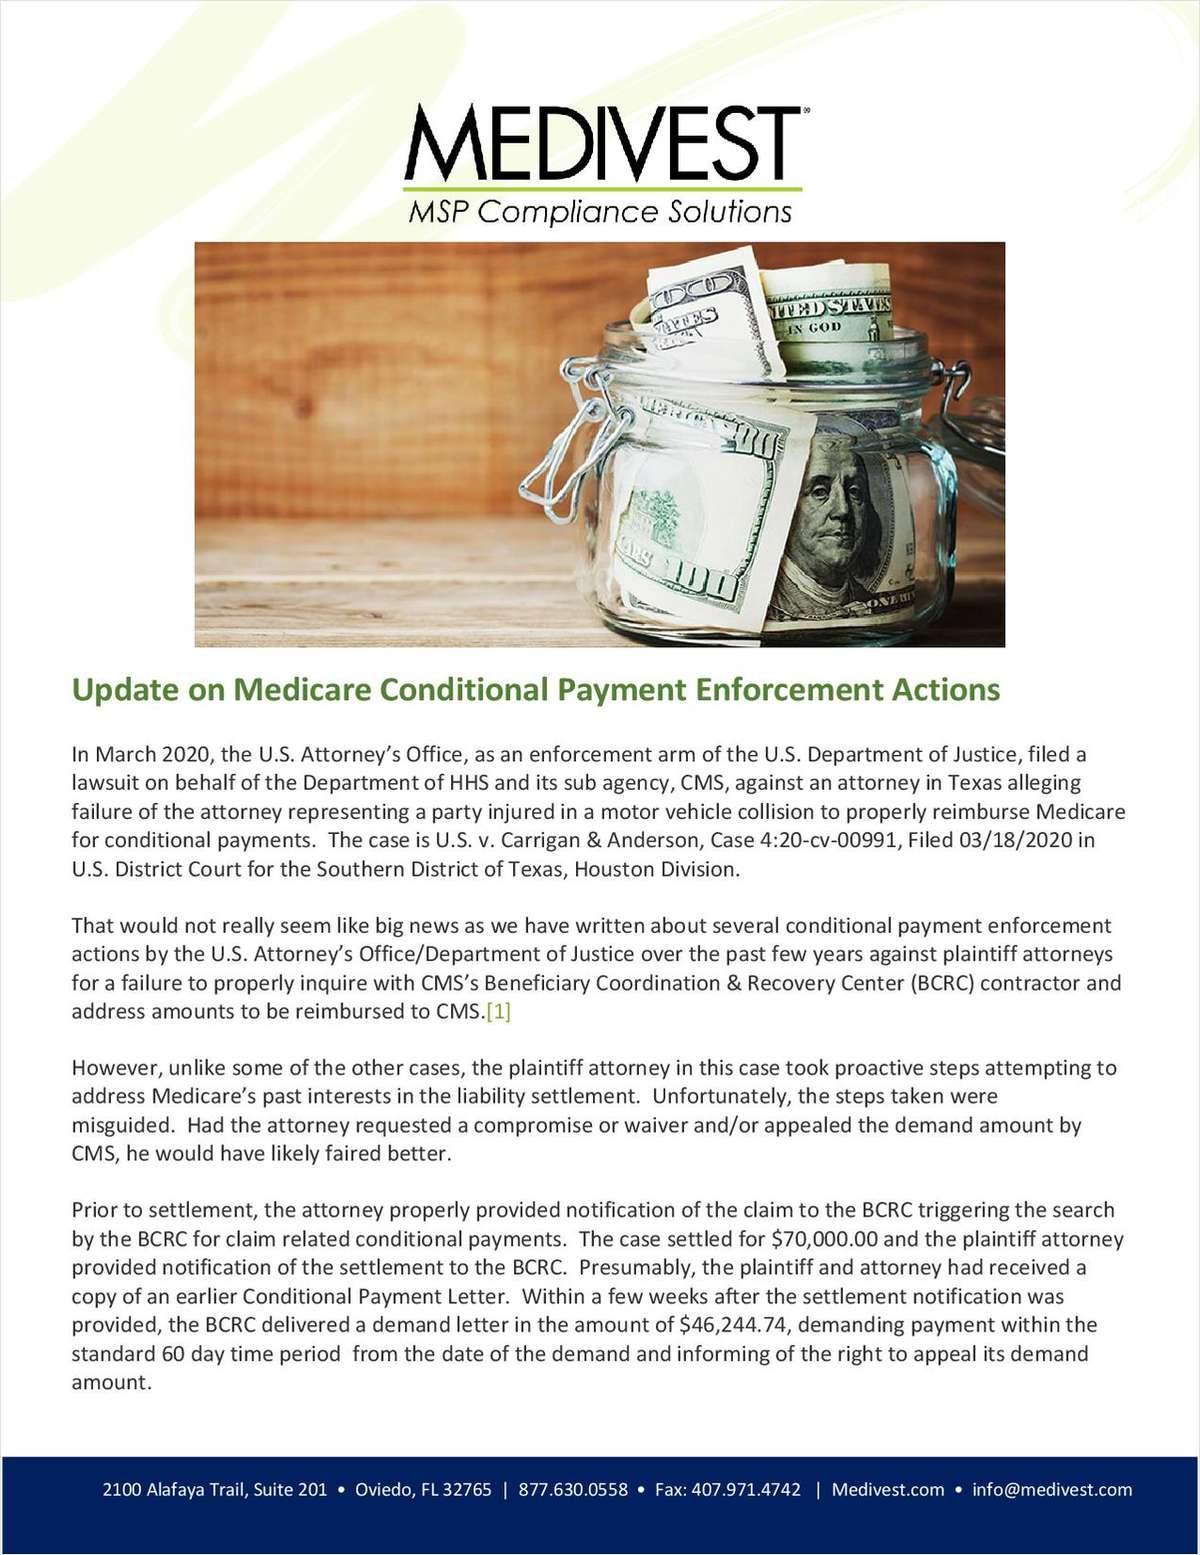 Avoiding Mis-Steps with Medicare Conditional Payment Enforcement Actions